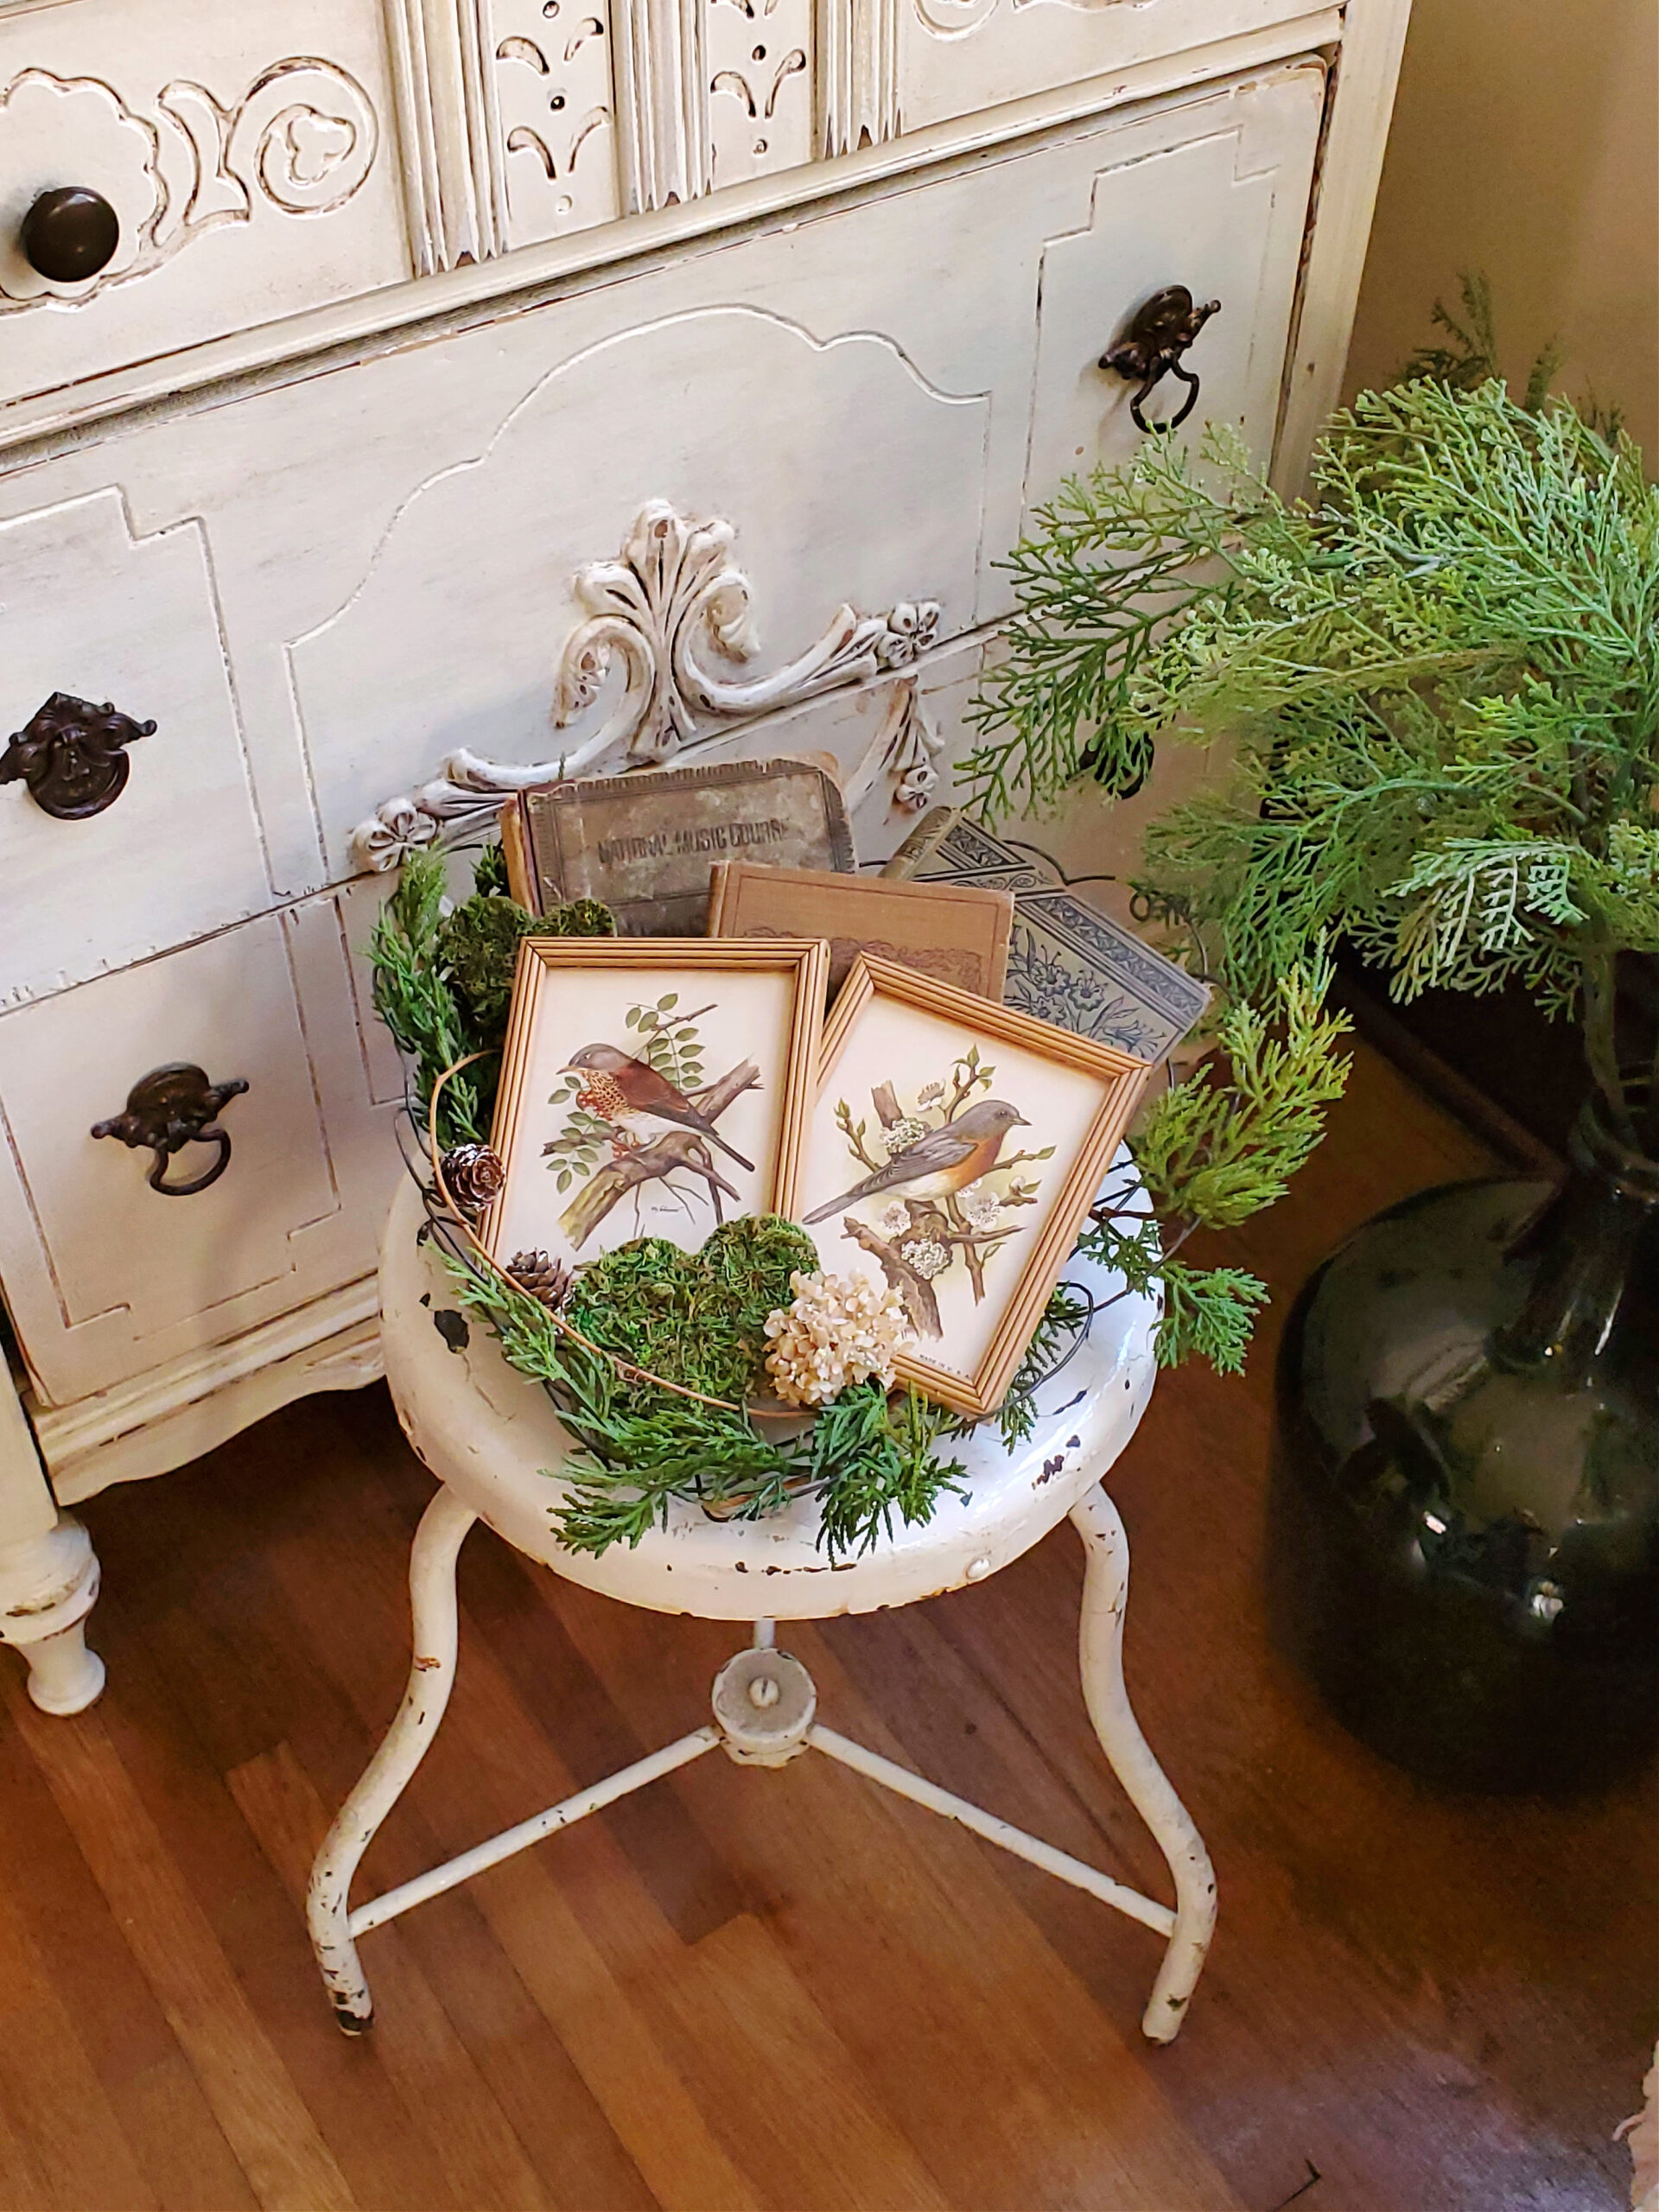 Vintage bird pictures and vintage books in a wire heart basket with evergreens nature inspired February decor